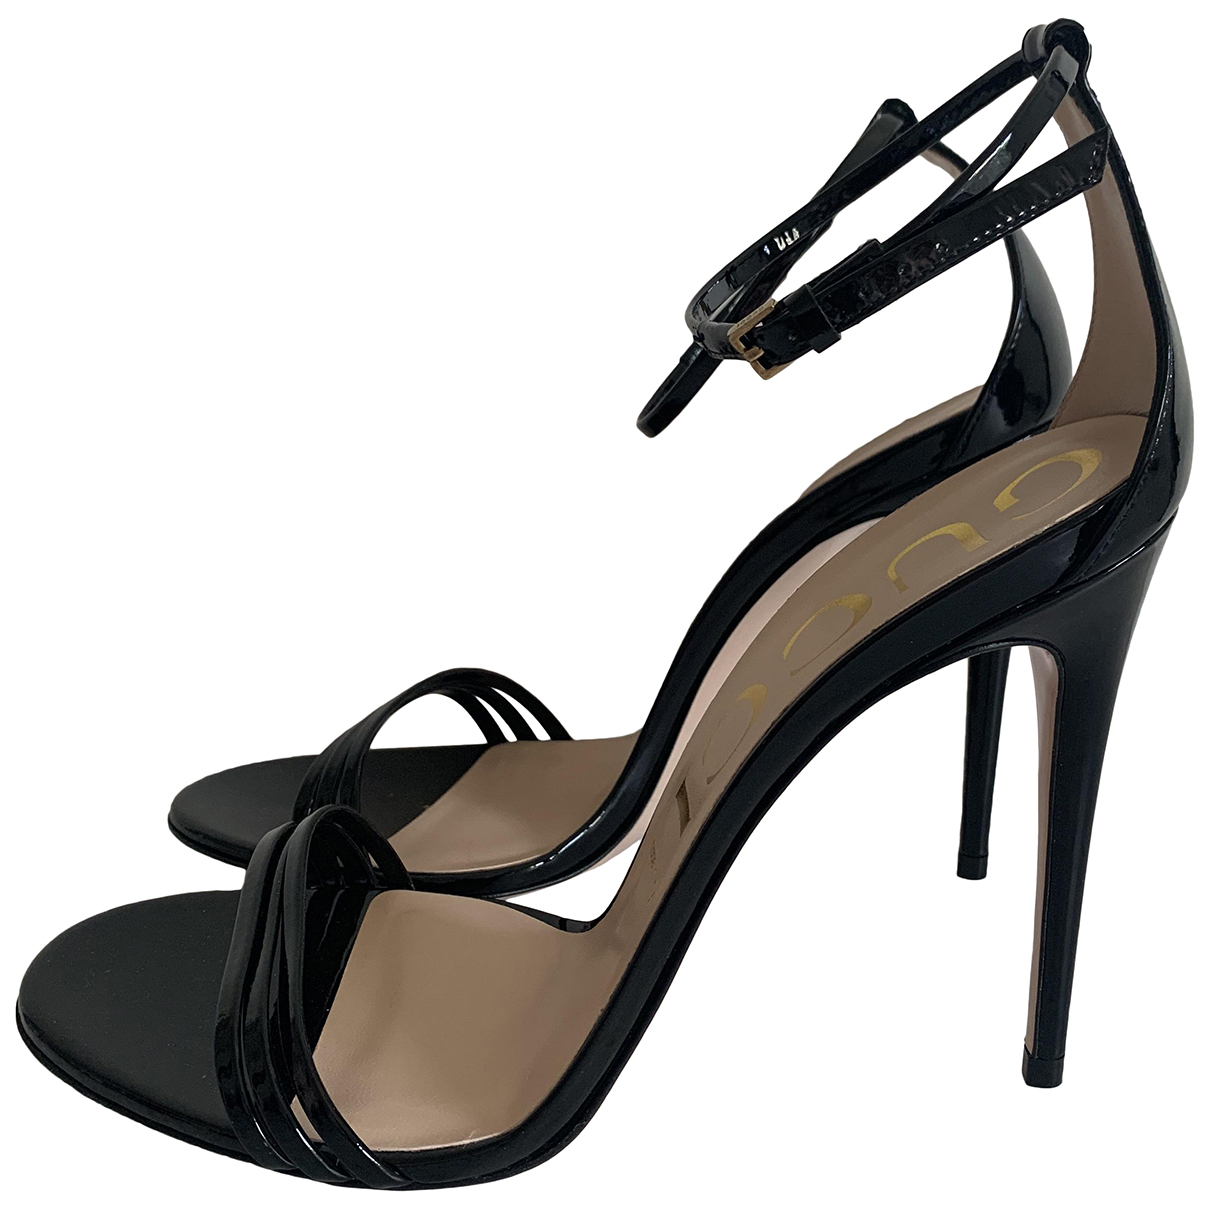 Gucci N Black Patent leather Sandals for Women 40.5 IT